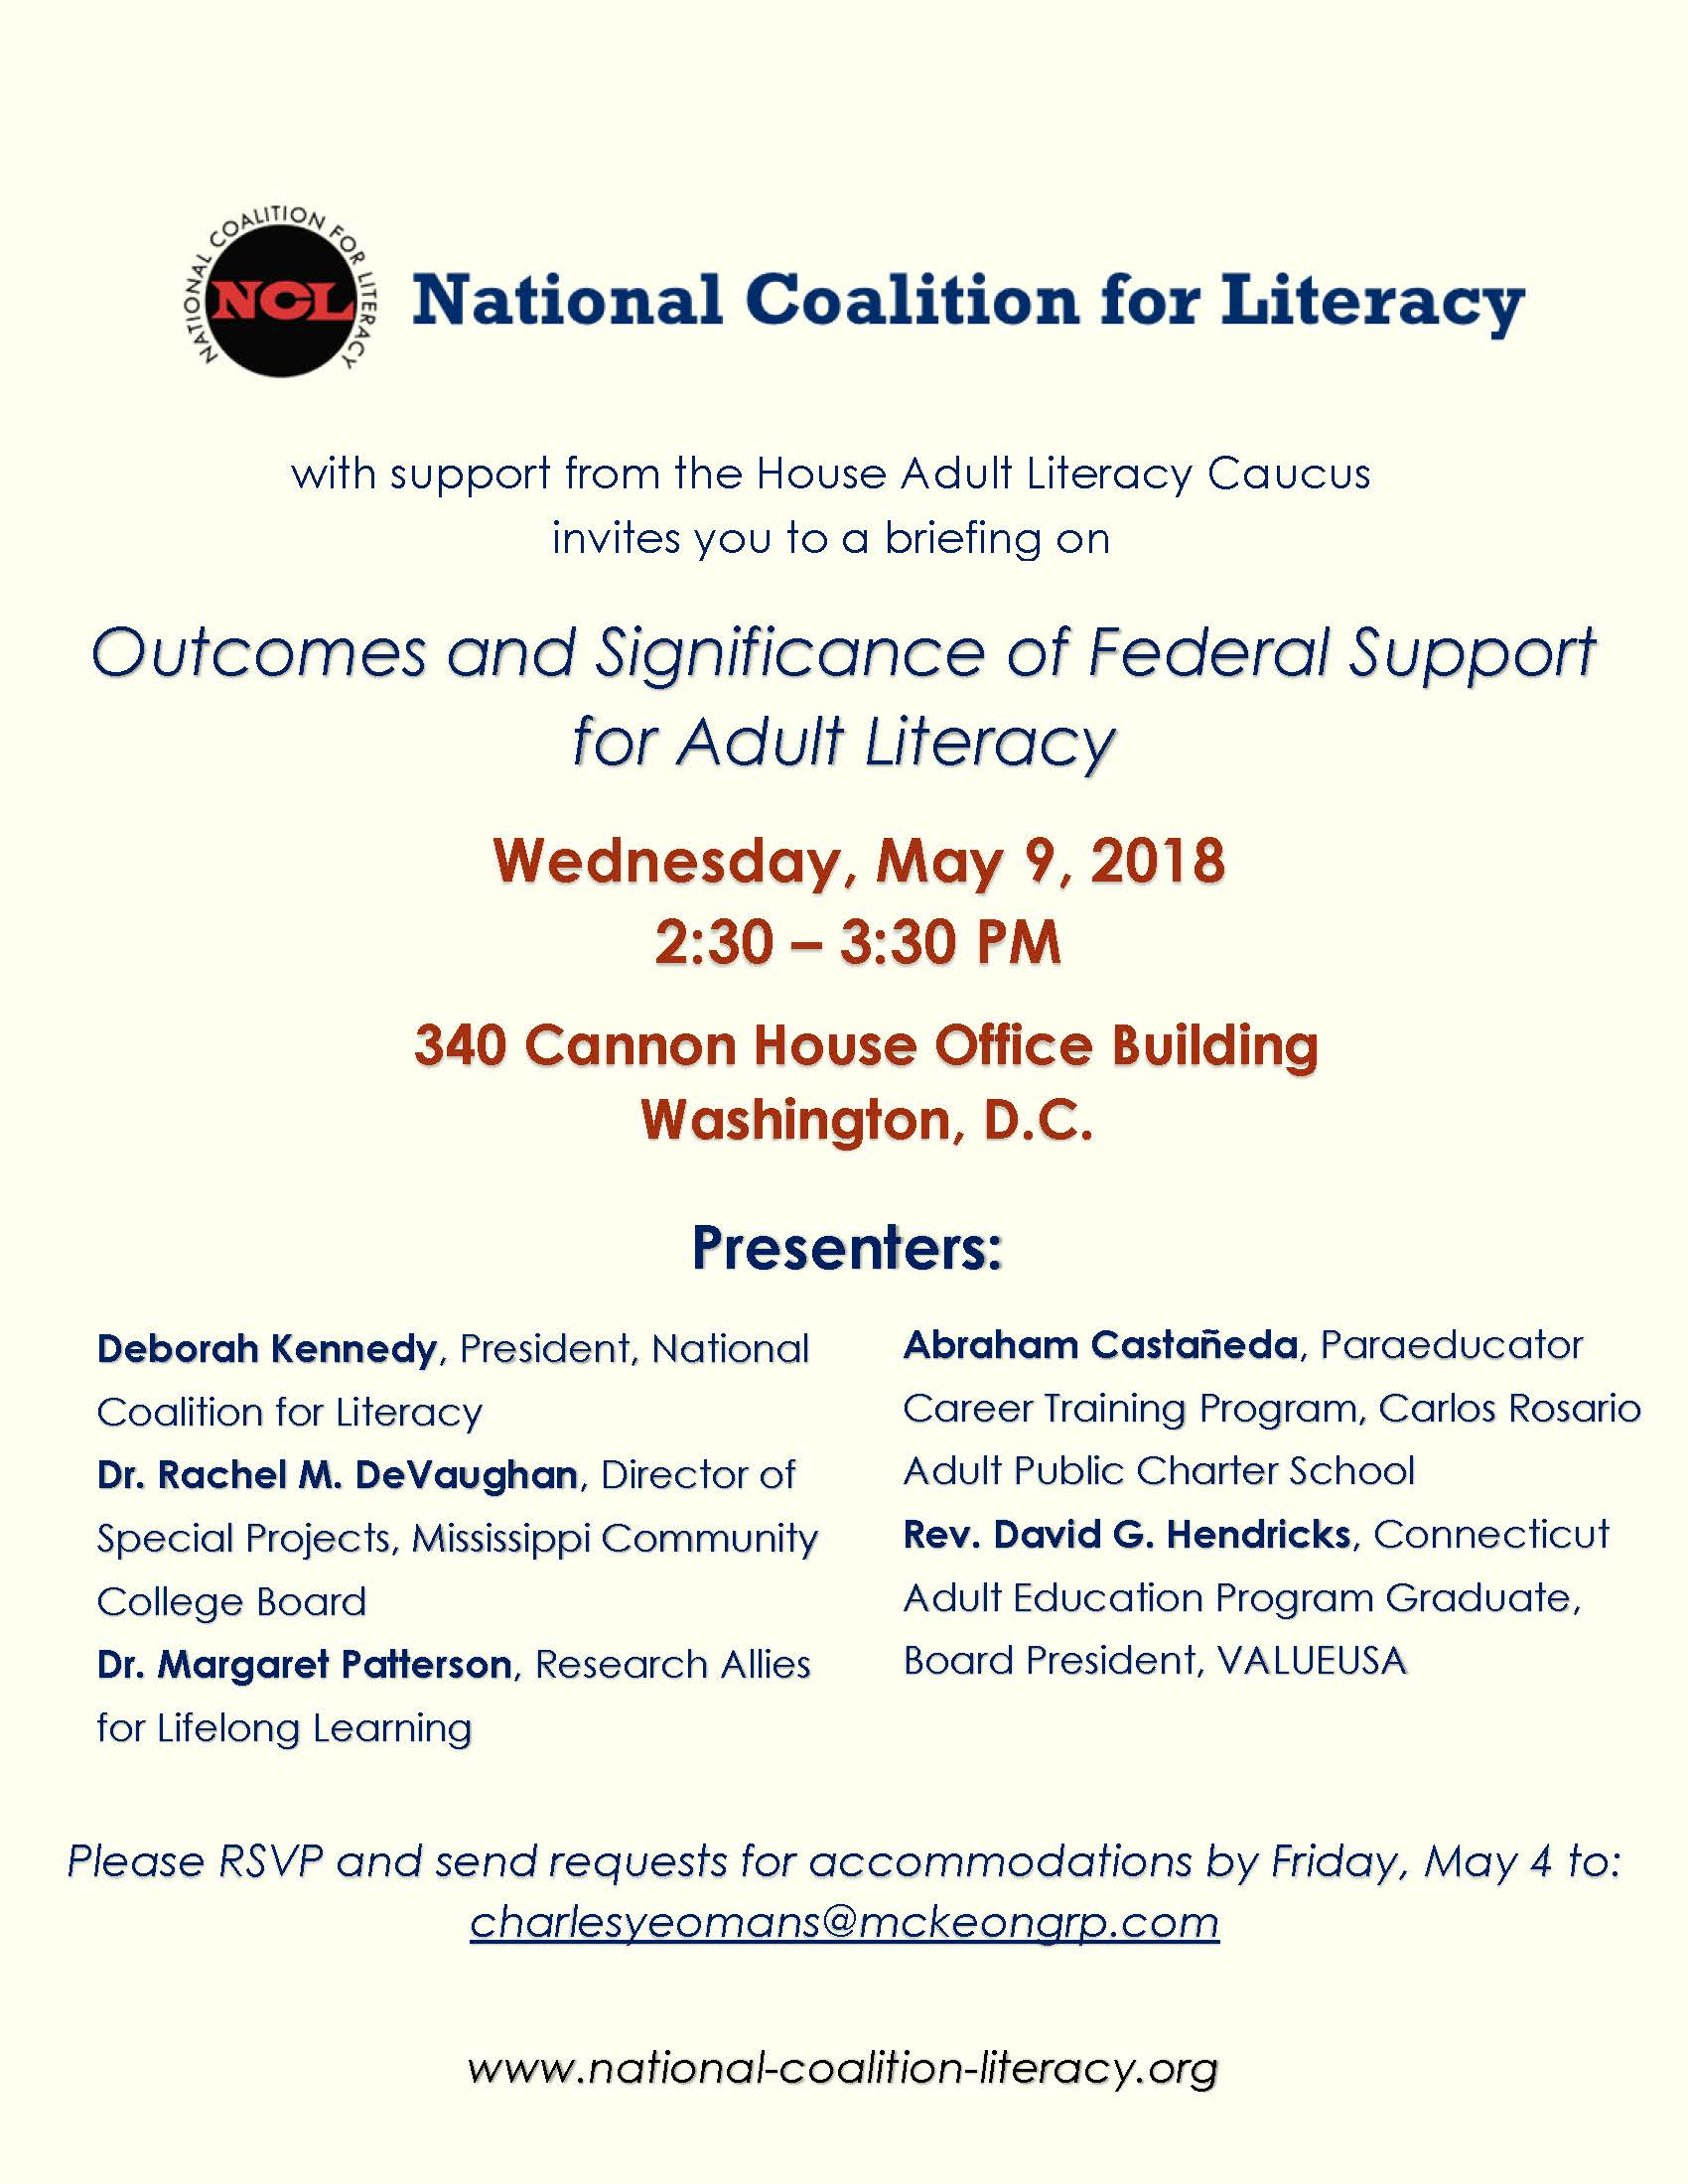 National Coalition for Literacy Invitation-1